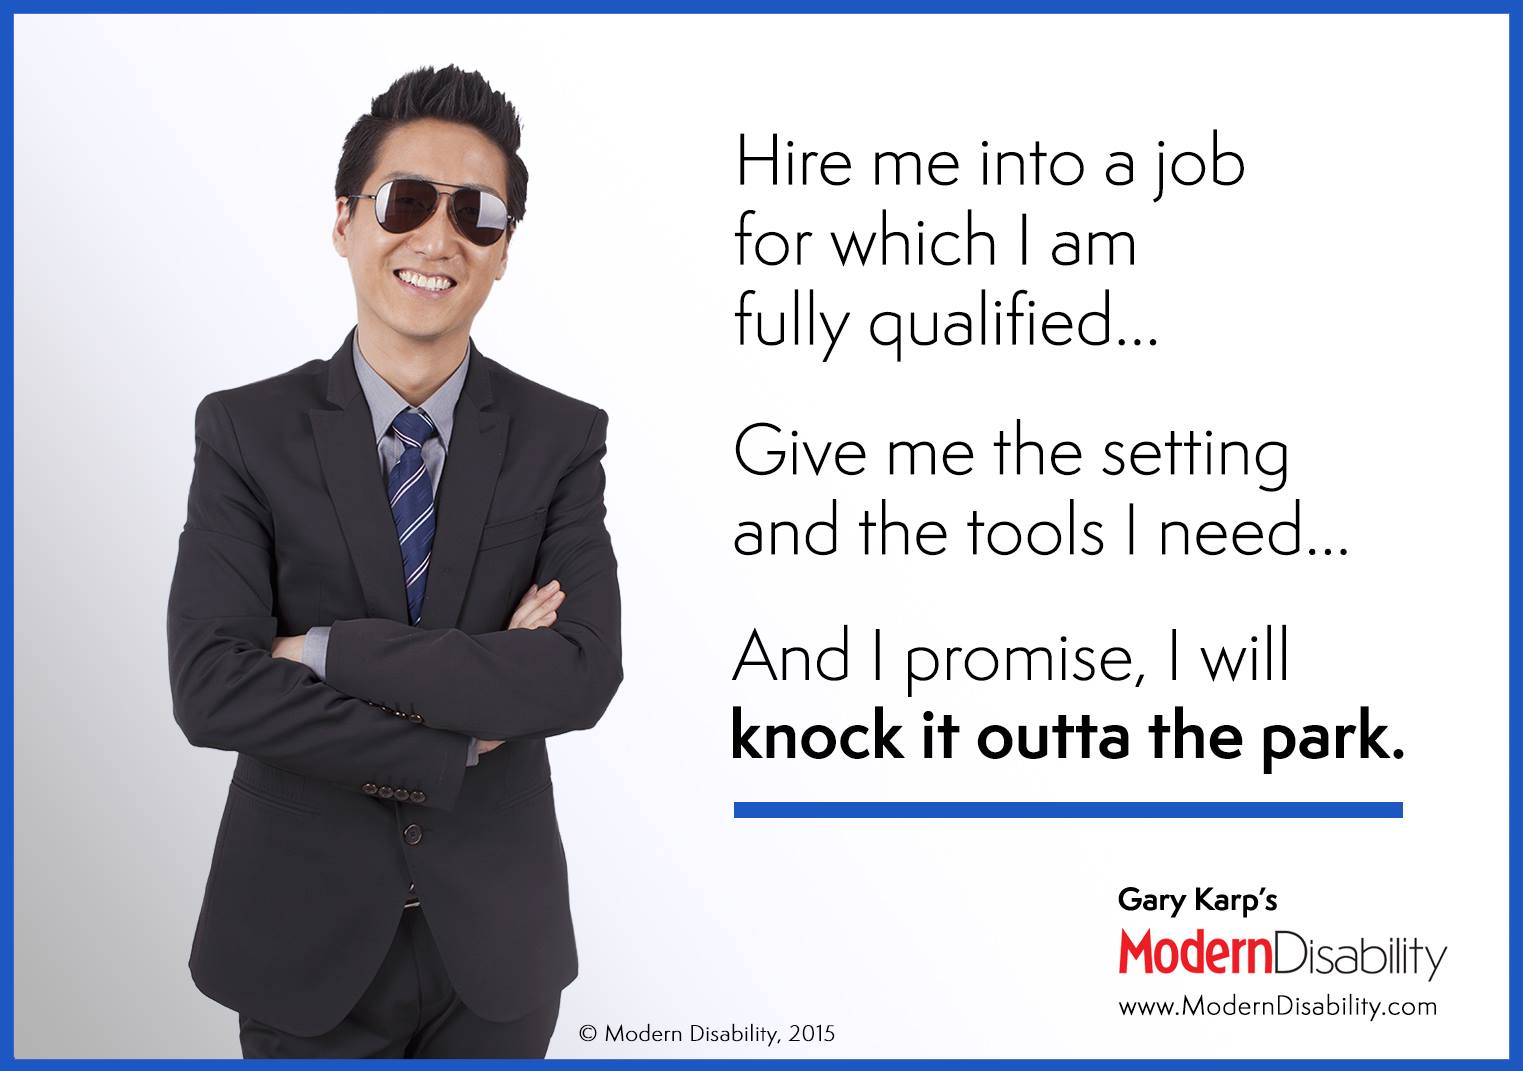 "A photo of an Asian man wearing dark glasses in a business suit, and the text, ""Hire me into a job for which I am fully qualified... Give me the setting and the tools I need... And I promise I will knock it outta the park."""